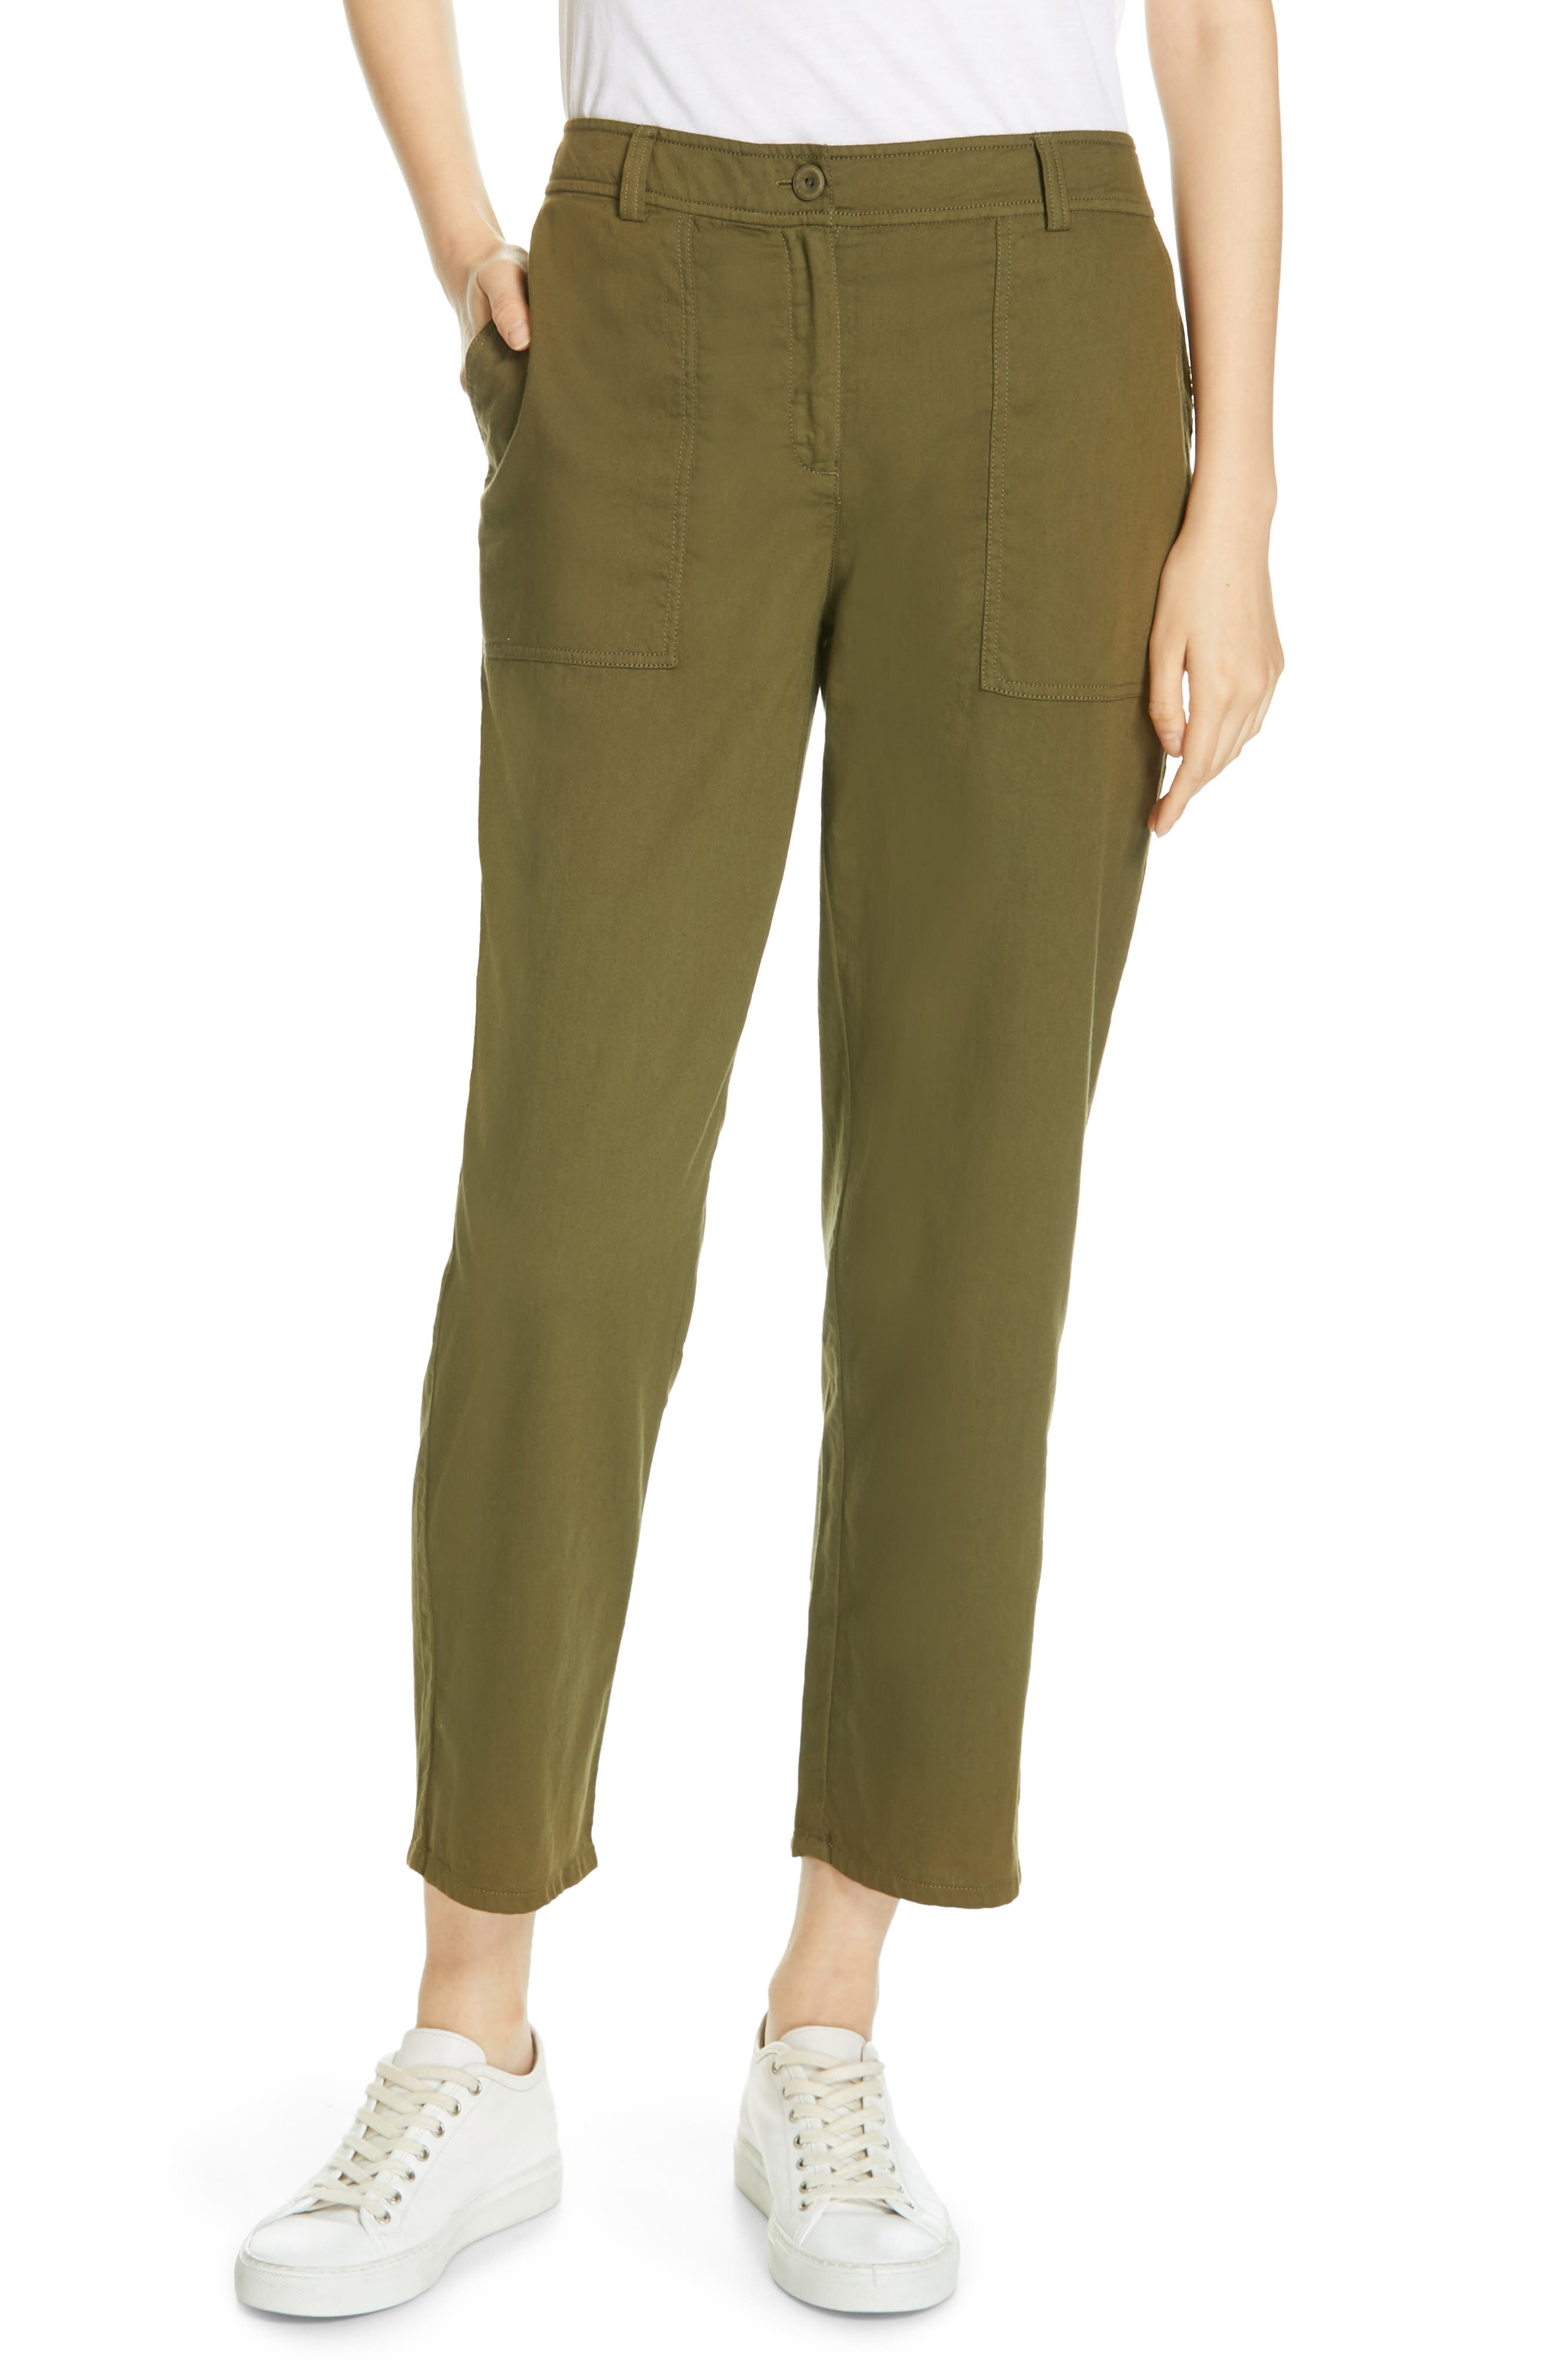 EILEEN FISHER, Slouchy Ankle Pants, Main thumbnail 1, color, OLIVE